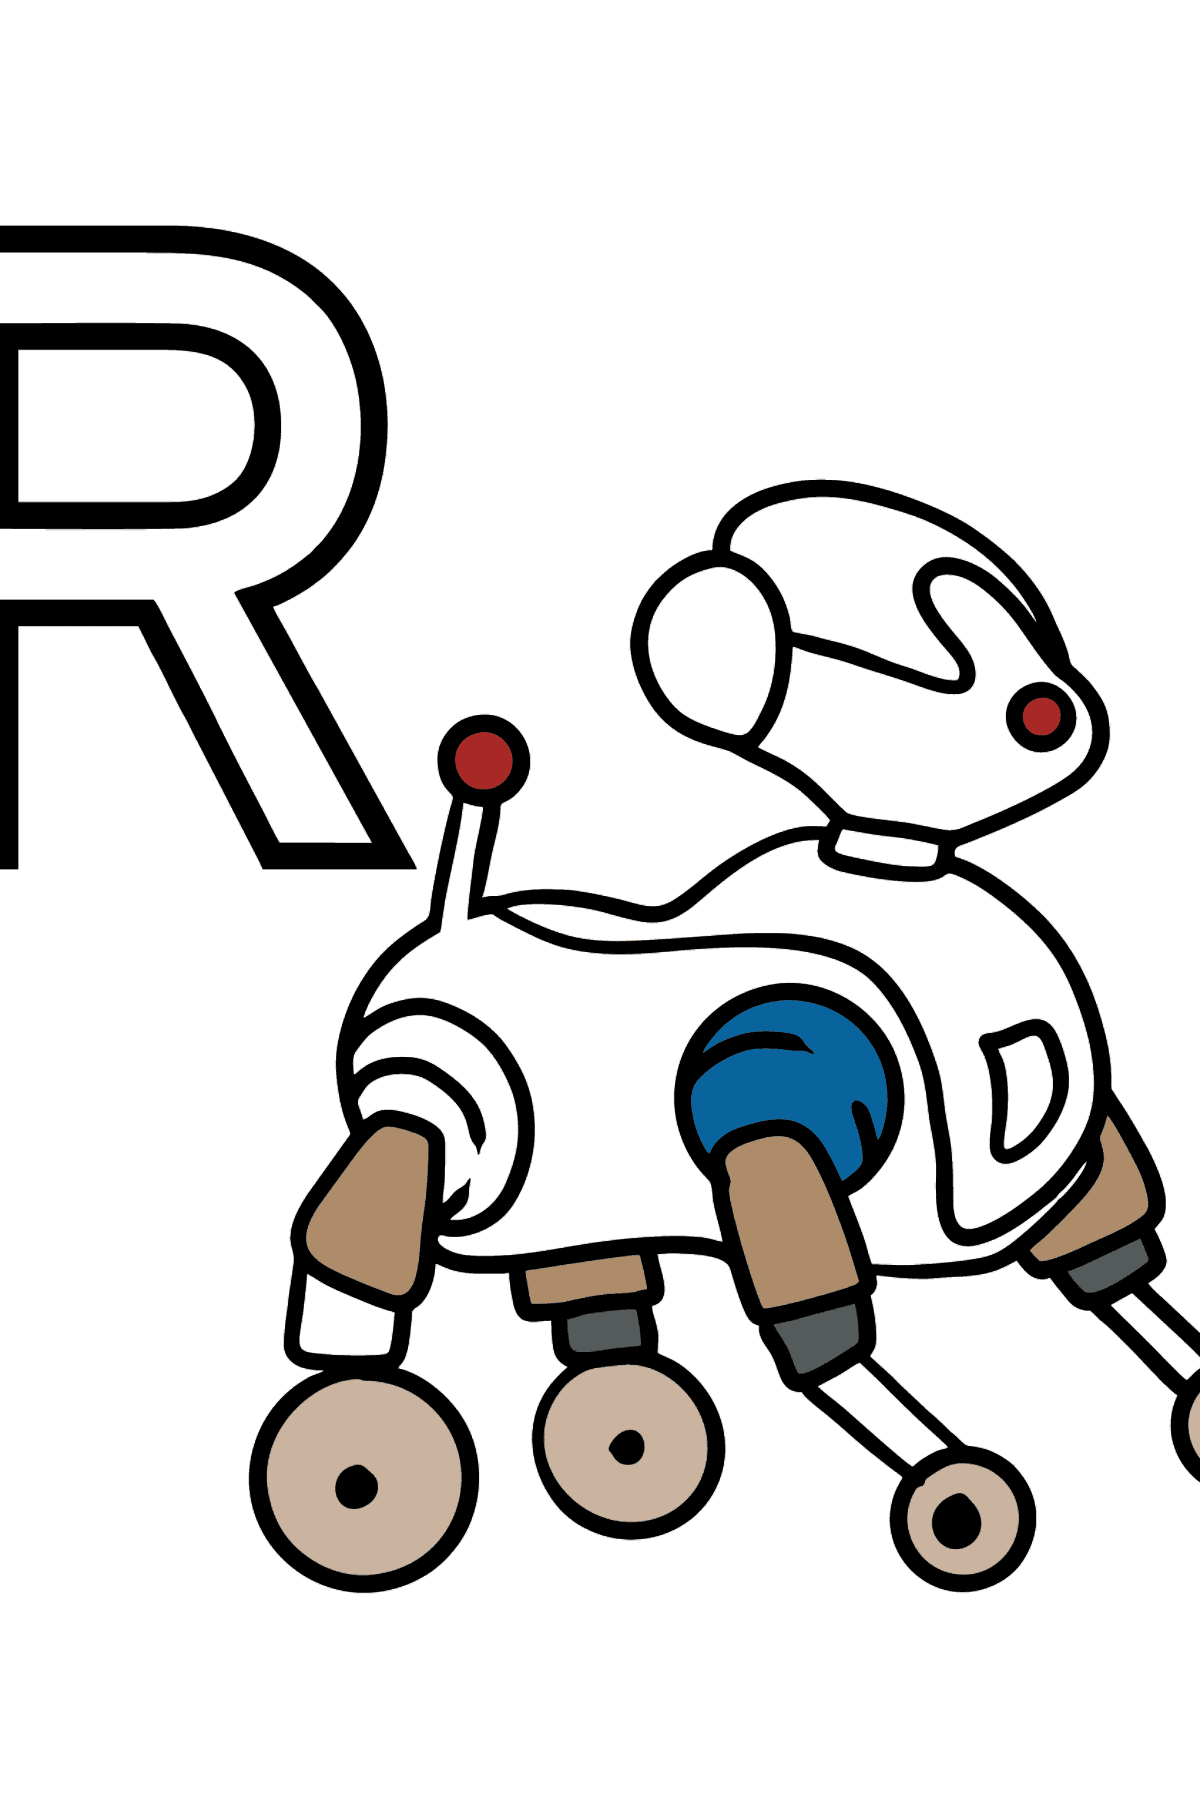 French Letter R coloring pages - ROBOT - Coloring Pages for Kids